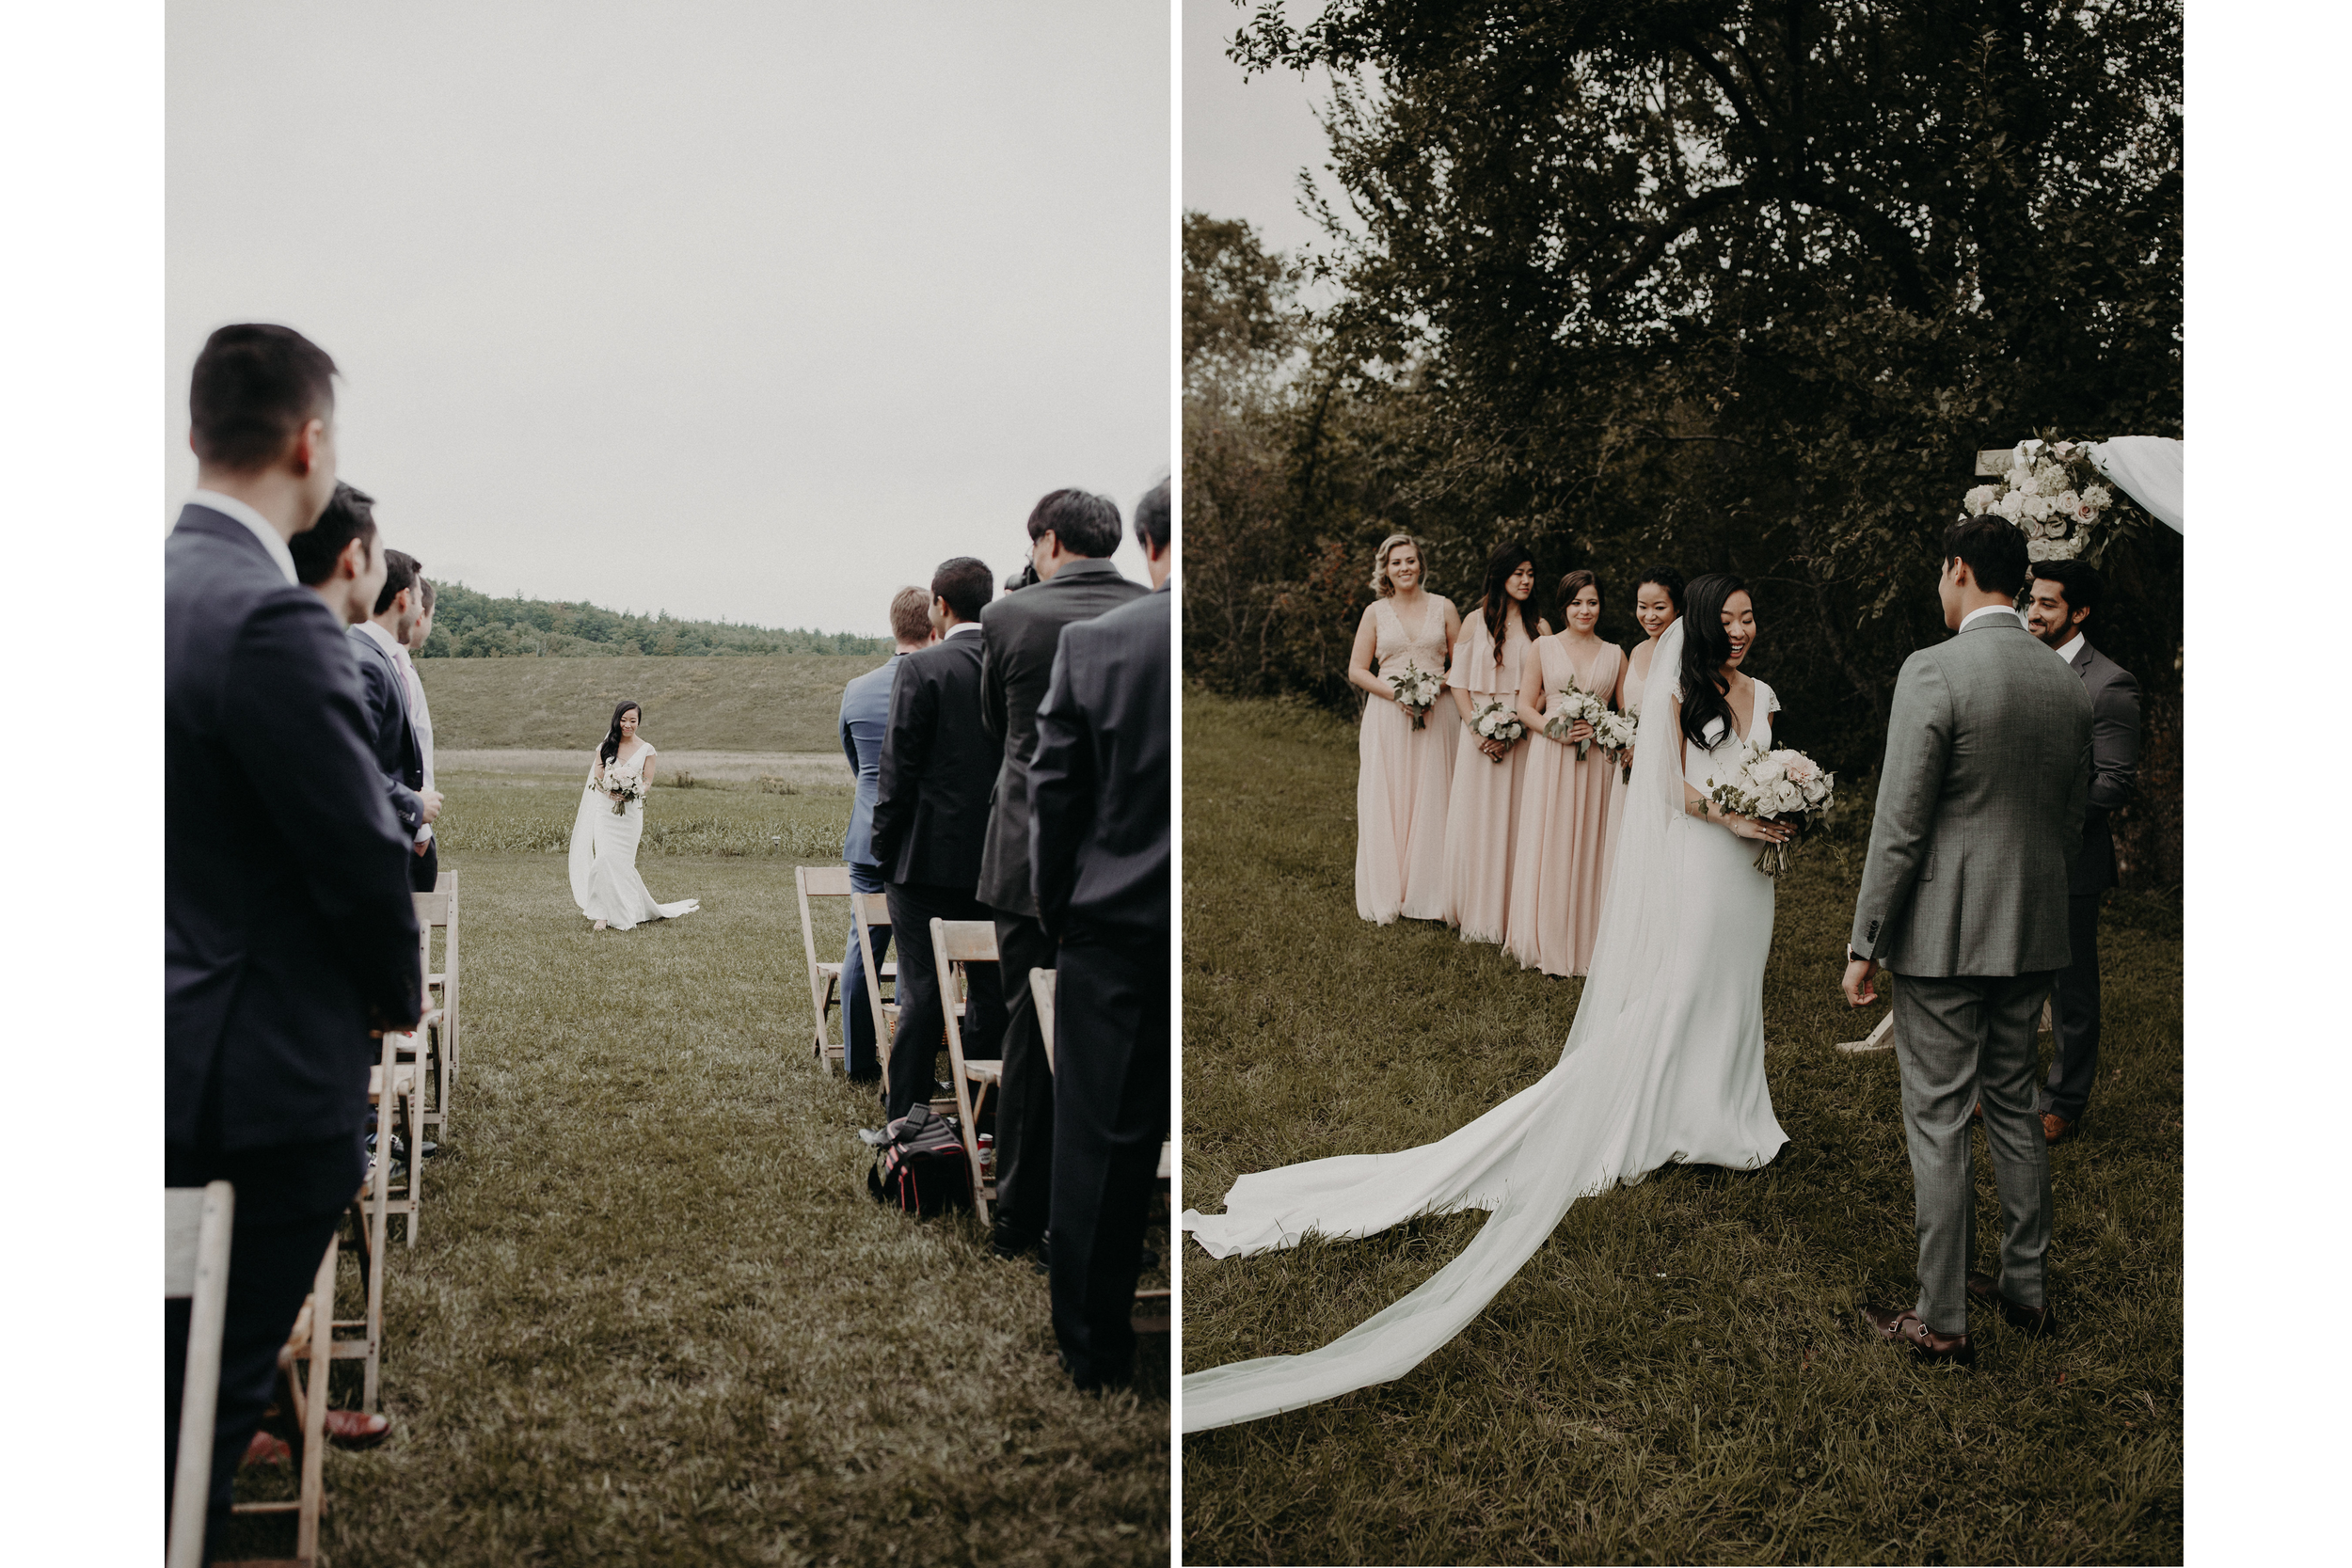 Hayfield-catskills-barn-wedding-weddings-venue-outdoors-upstate-best-top-rustic-renovated-barns-hipster-2